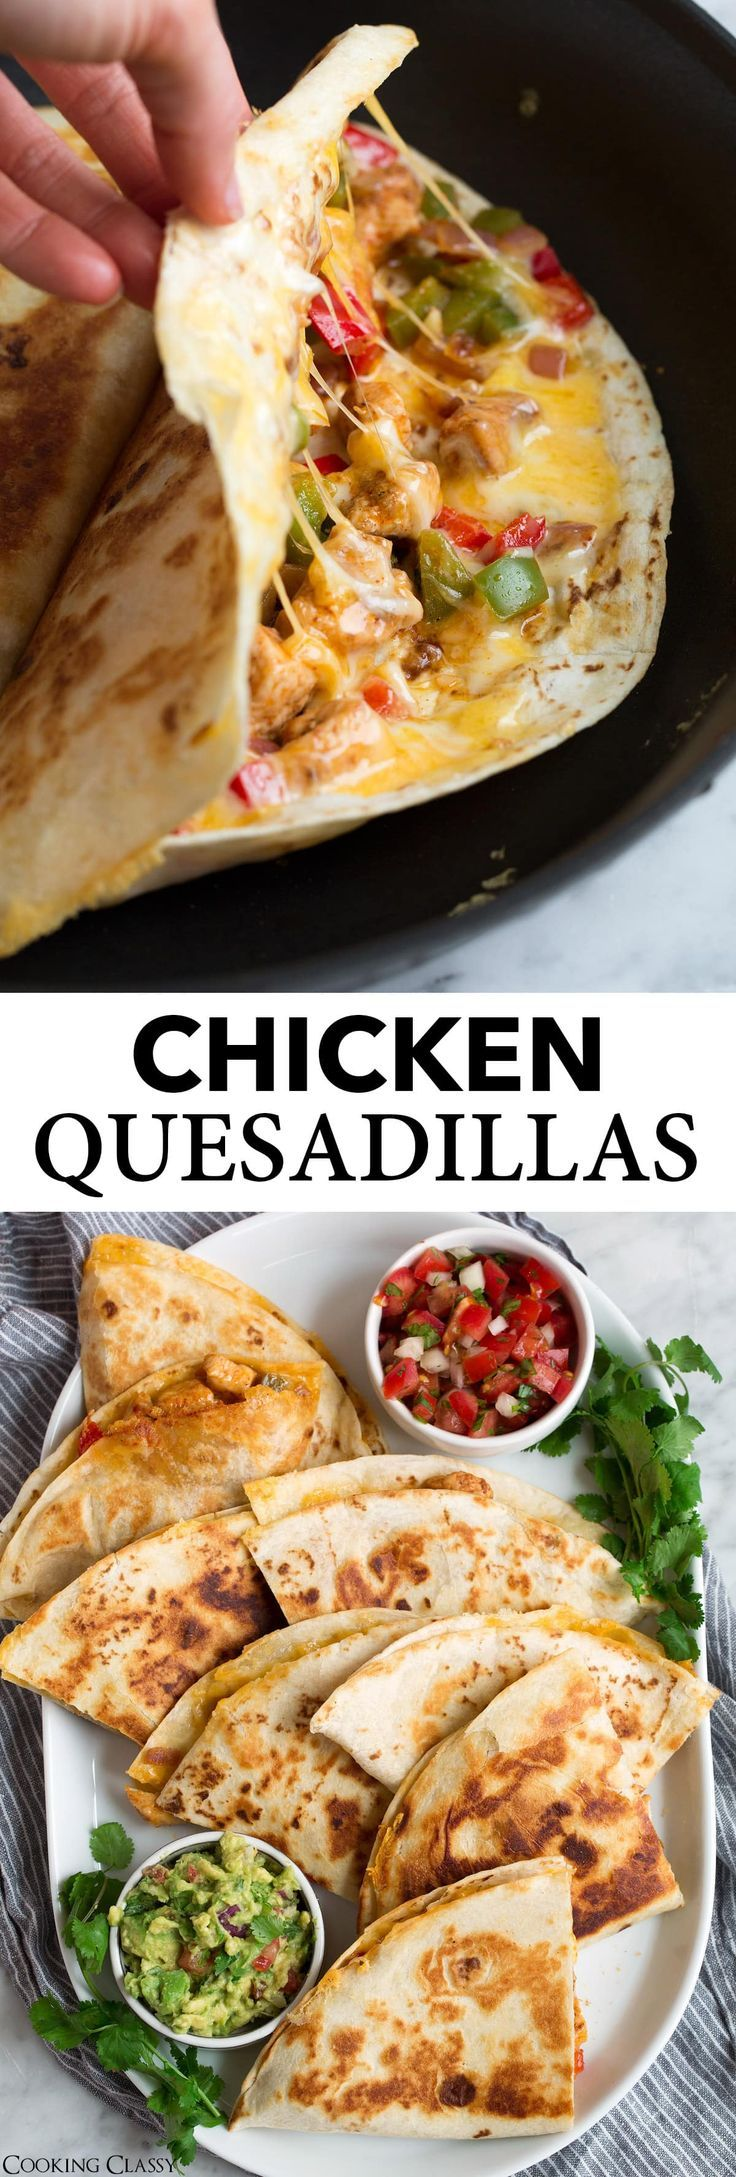 Loaded Chicken Quesadillas The Ultimate Quesadillas Recipe These Are Brimming With Two Kinds Of Gooey Melted Cheese And A Flavorful F Rezepte Lecker Fajita